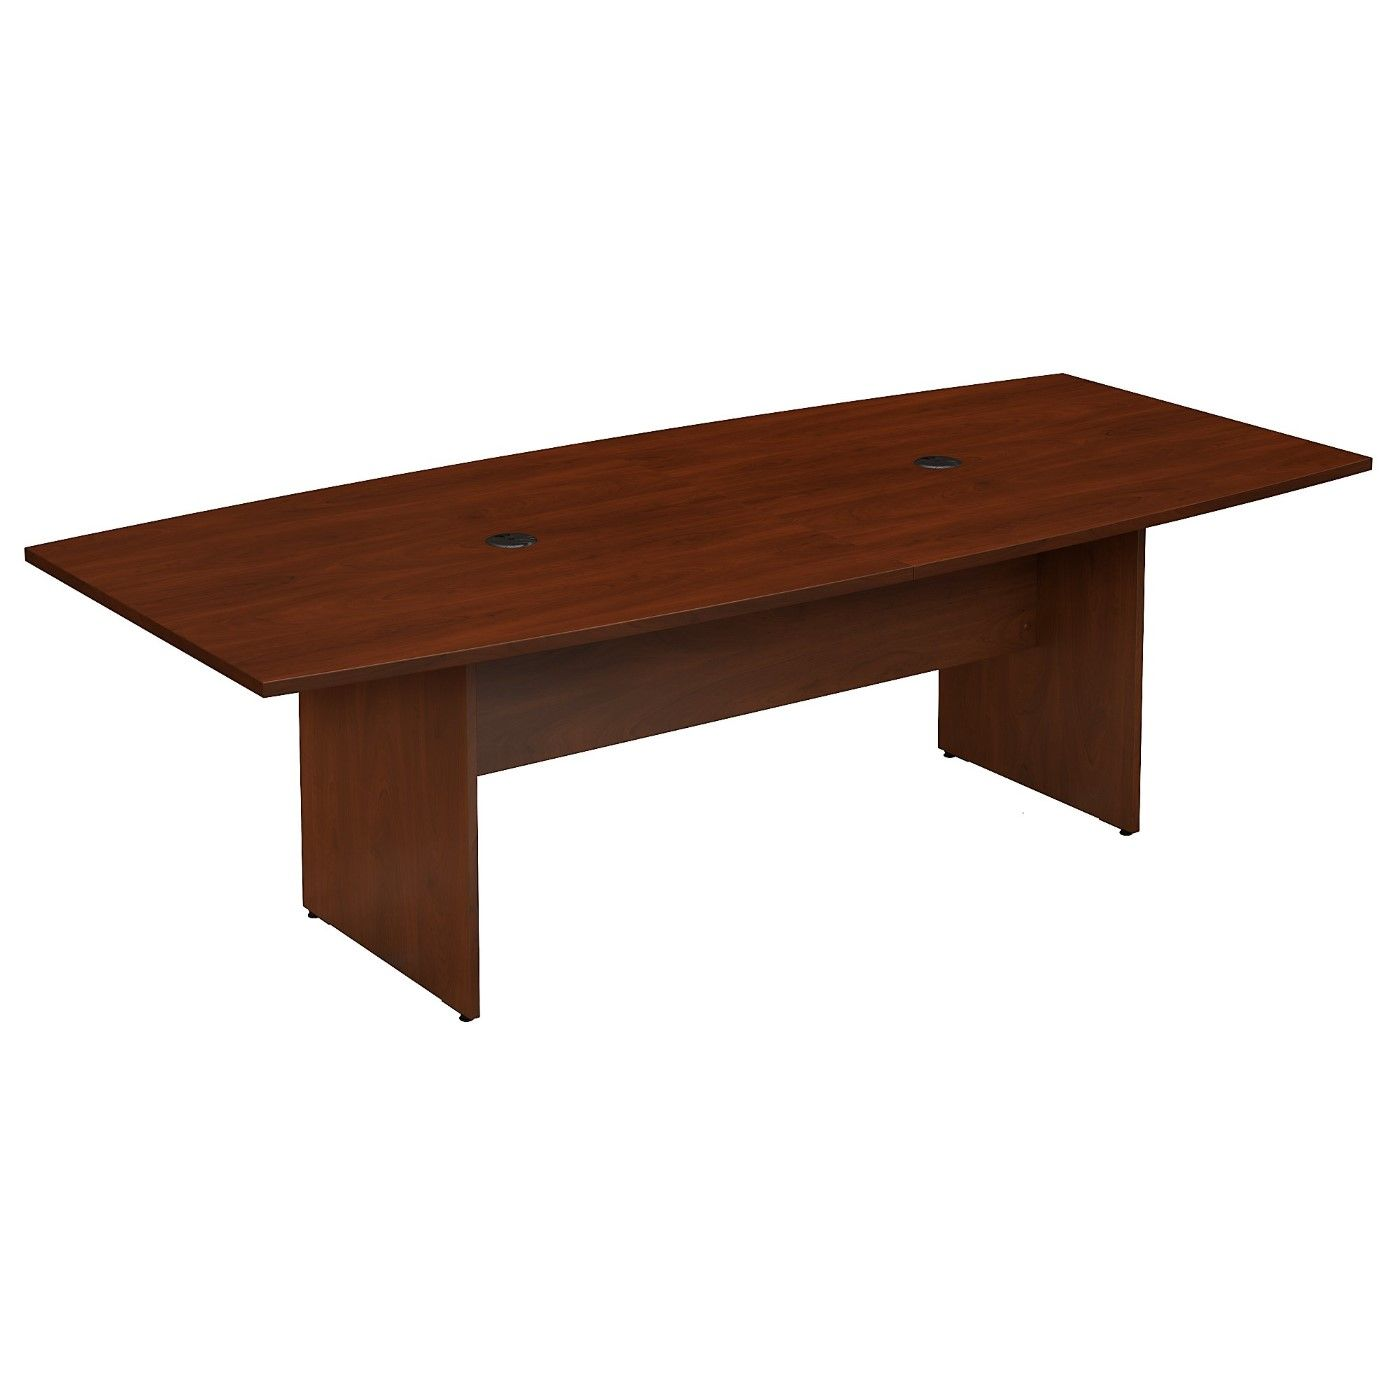 BUSH BUSINESS FURNITURE 96W X 42D BOAT SHAPED CONFERENCE TABLE WITH WOOD BASE. FREE SHIPPING